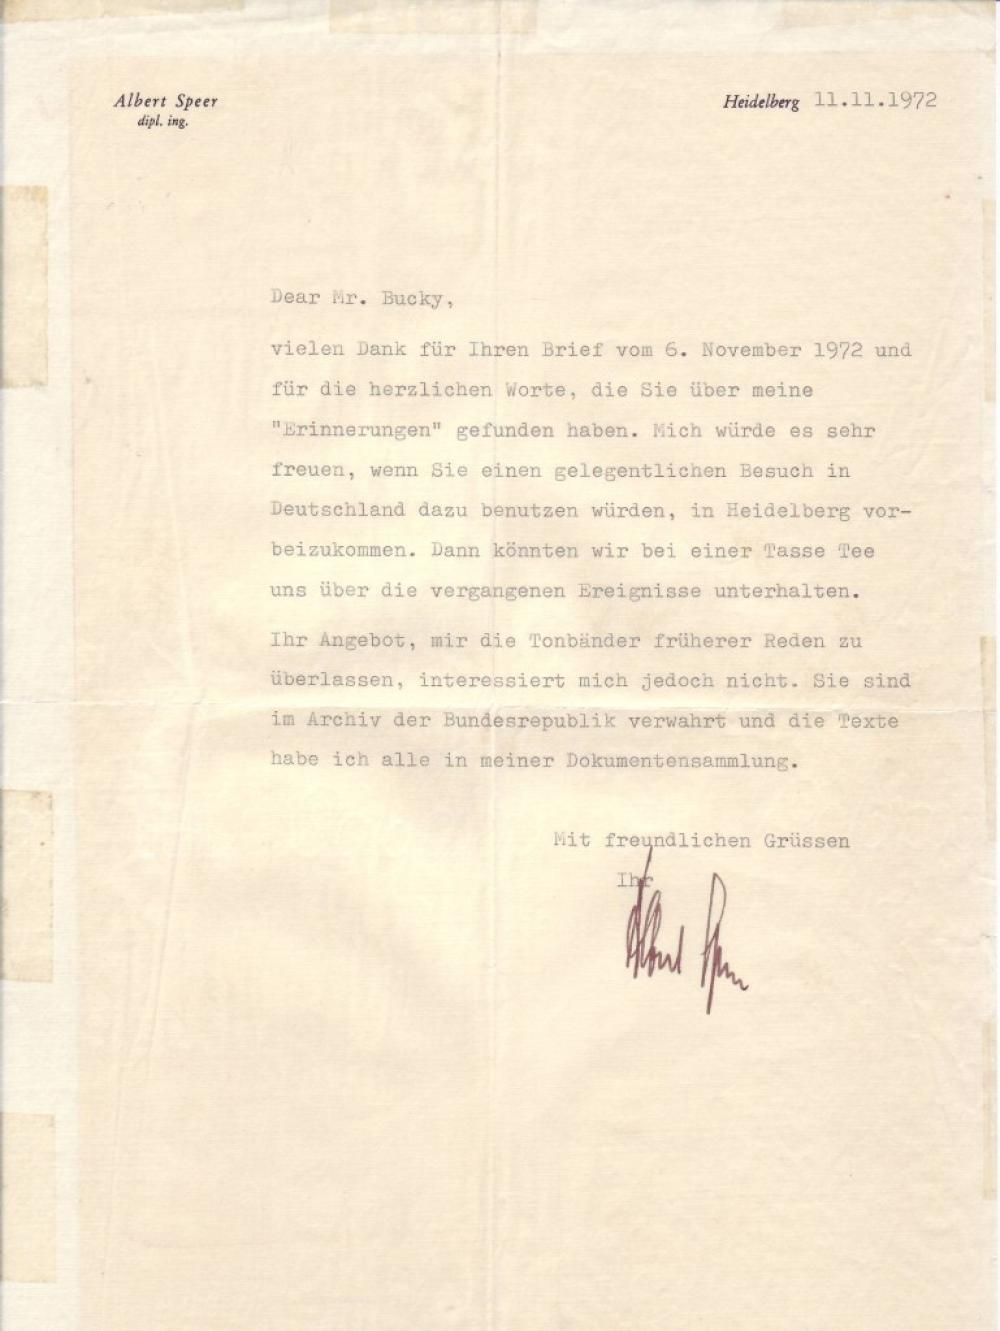 SPEER, ALBERT. Typed Letter Signed, in German, to former Berlin physician Peter A. Bucky (